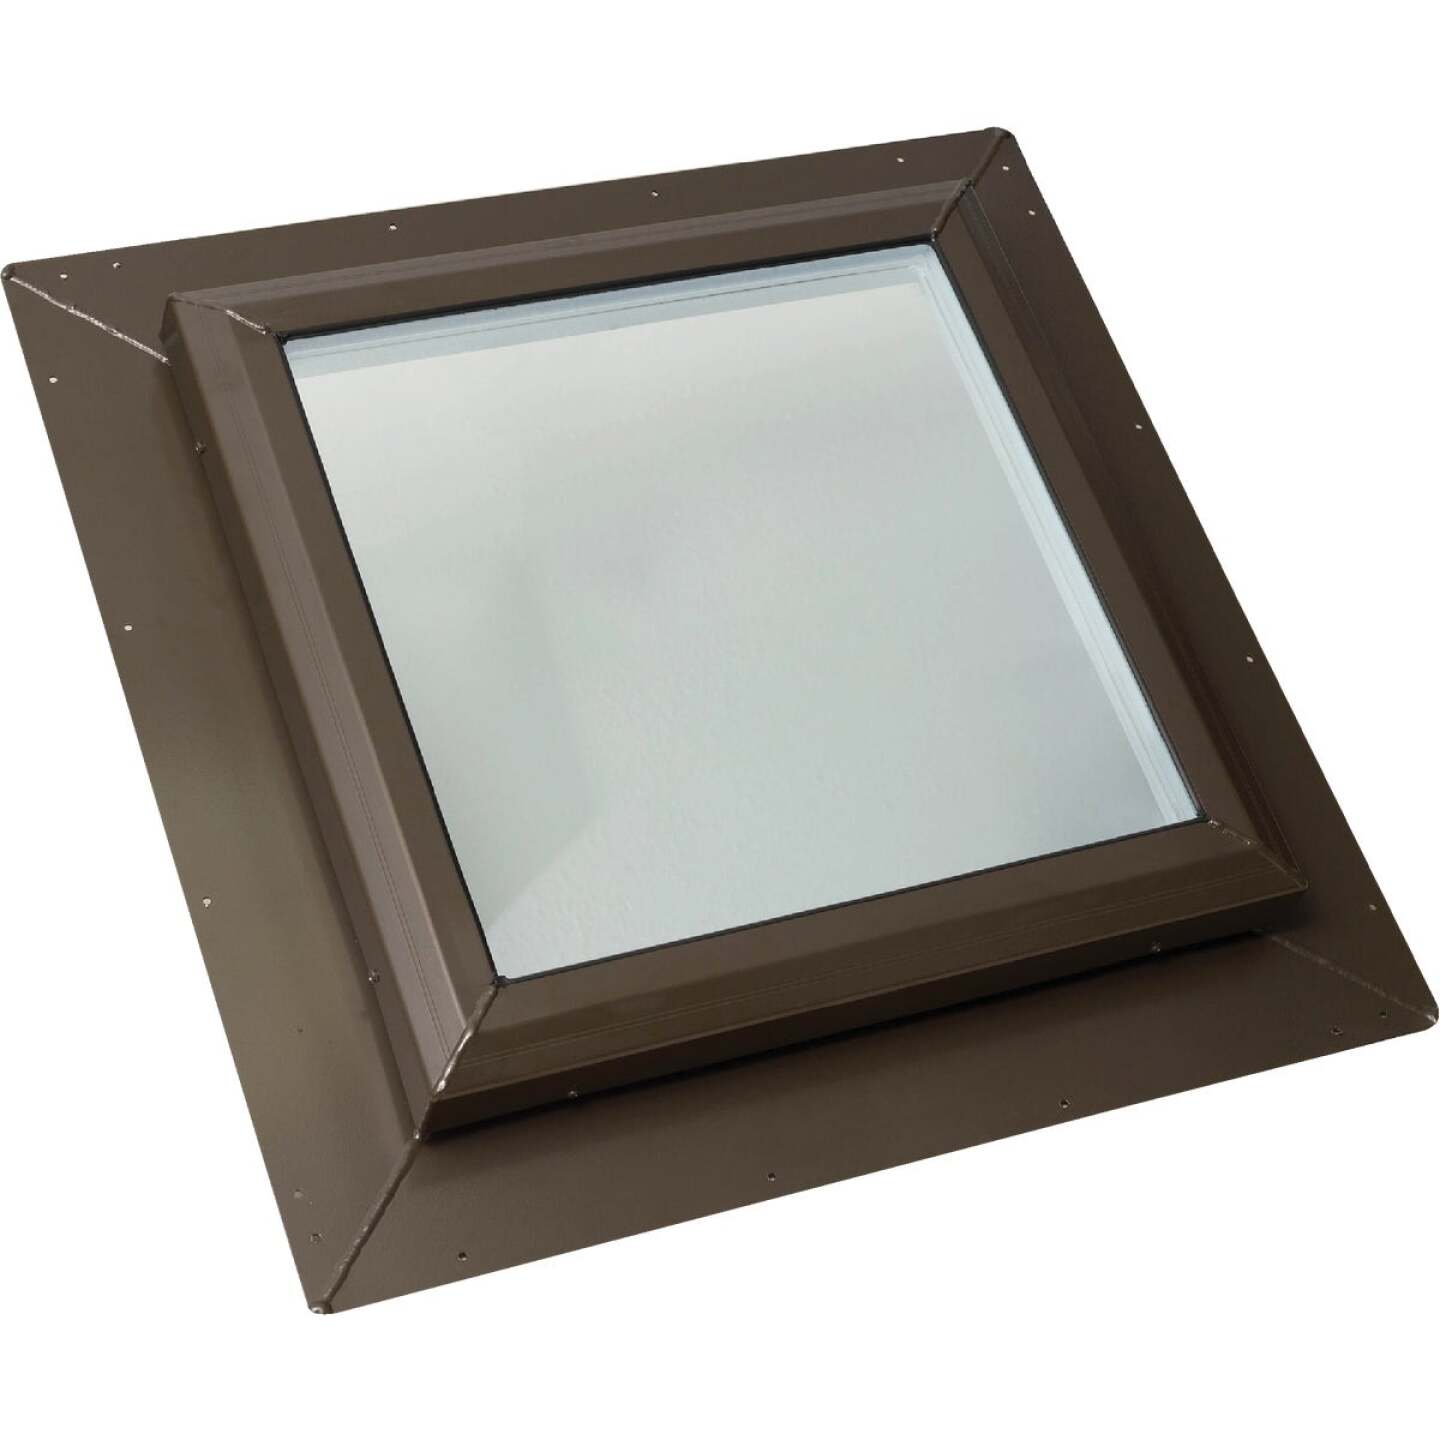 Kennedy Skylights 24 In. x 24 In. Bronze Self-Flashing Skylight Image 1